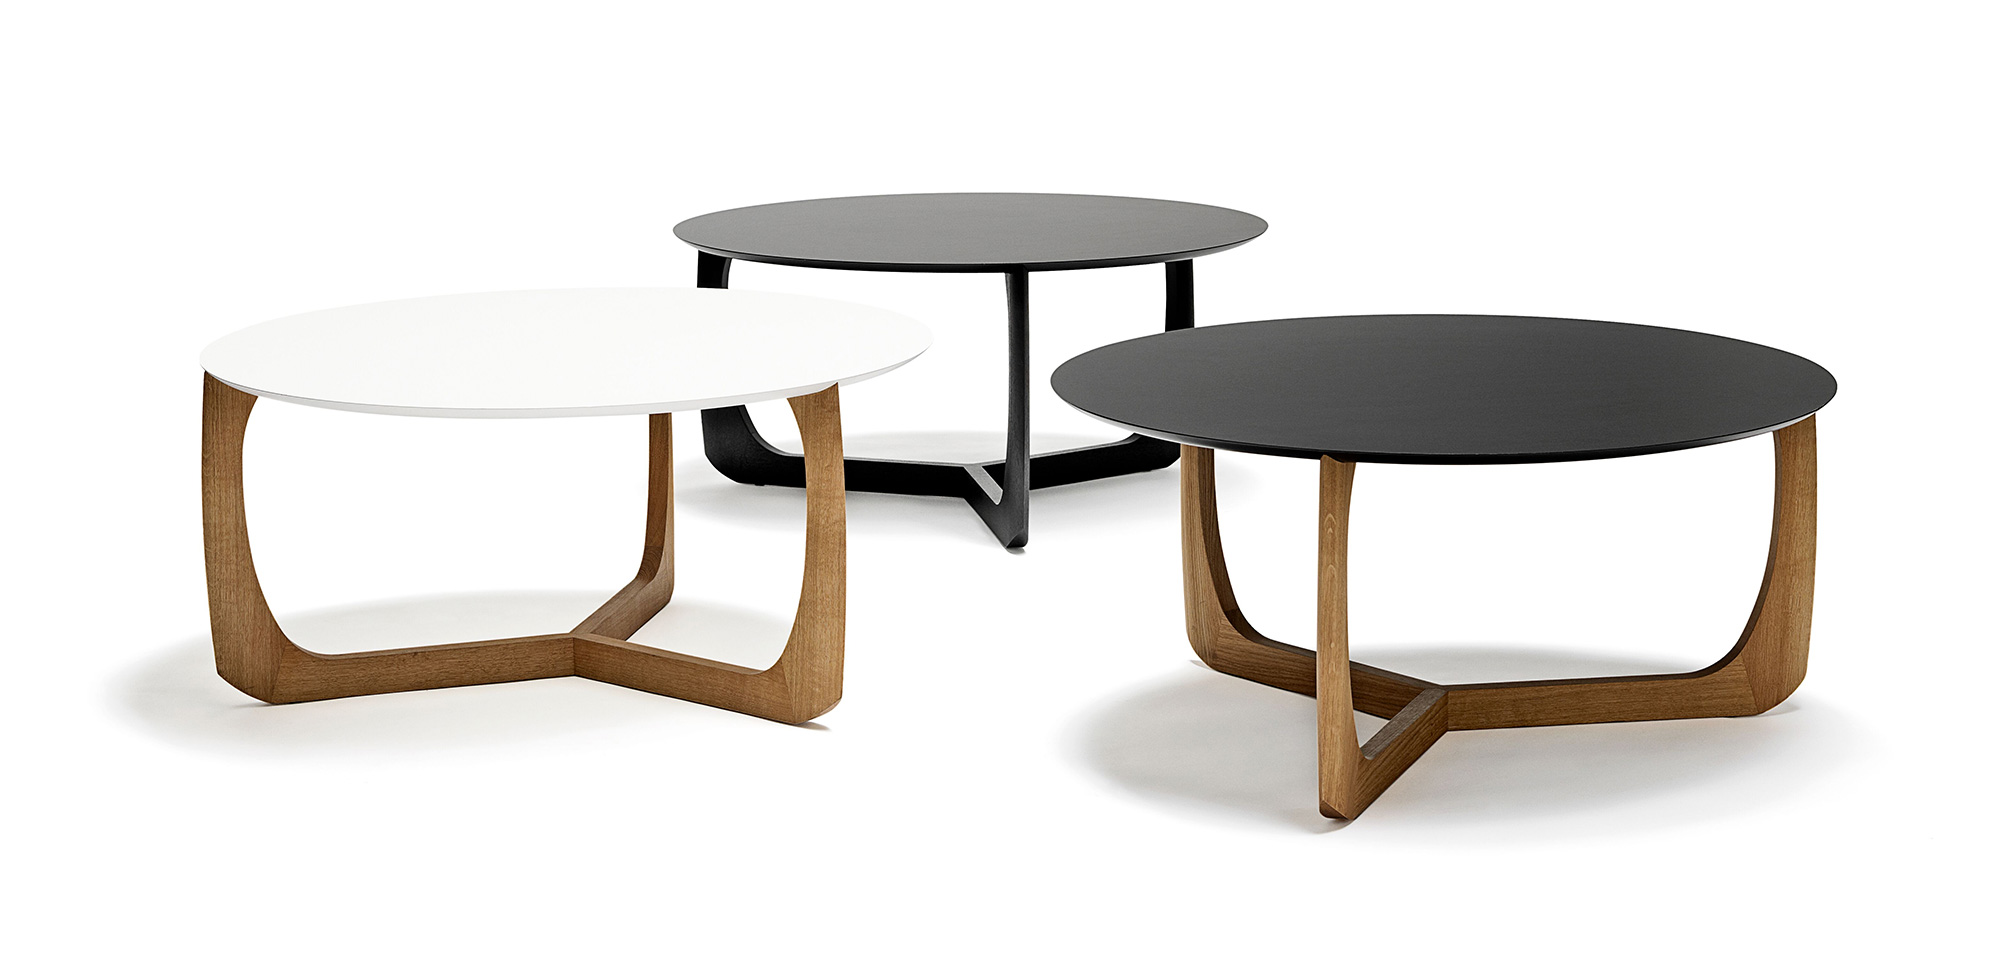 Table basse ronde ovale pas cher mobilier design for Table basse ronde scandinave pas cher